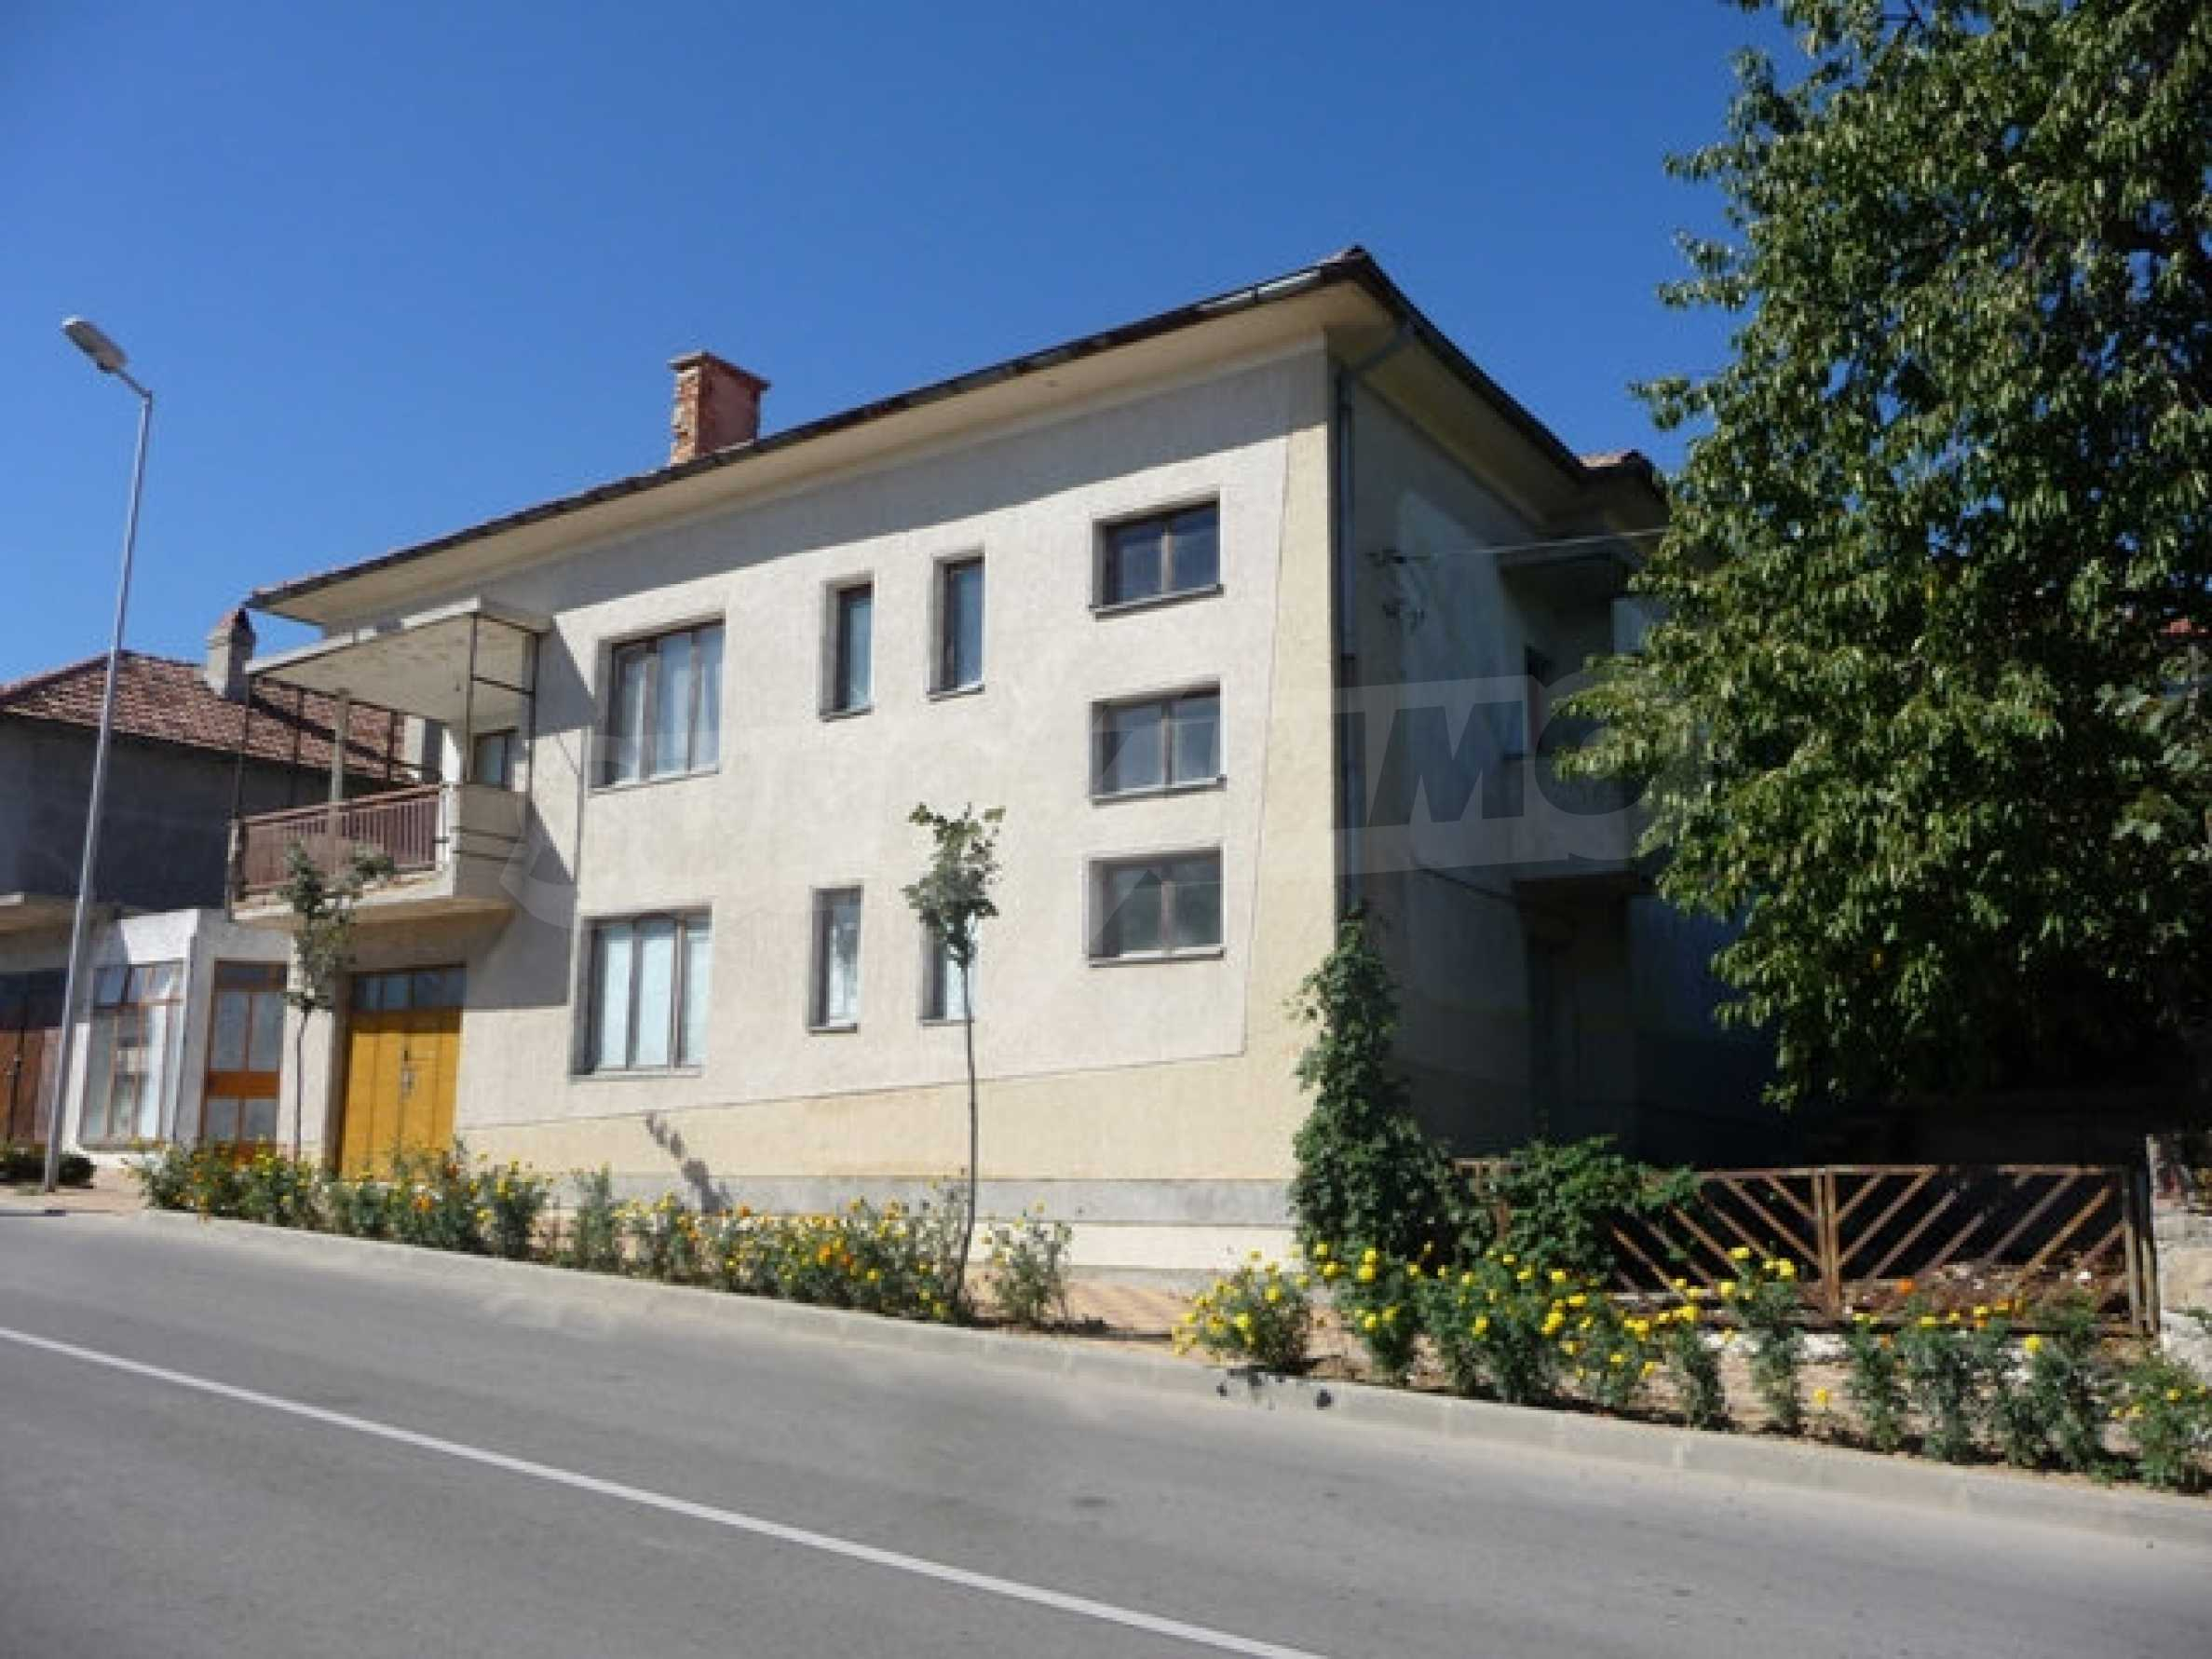 House with shop in Byala (Varna)